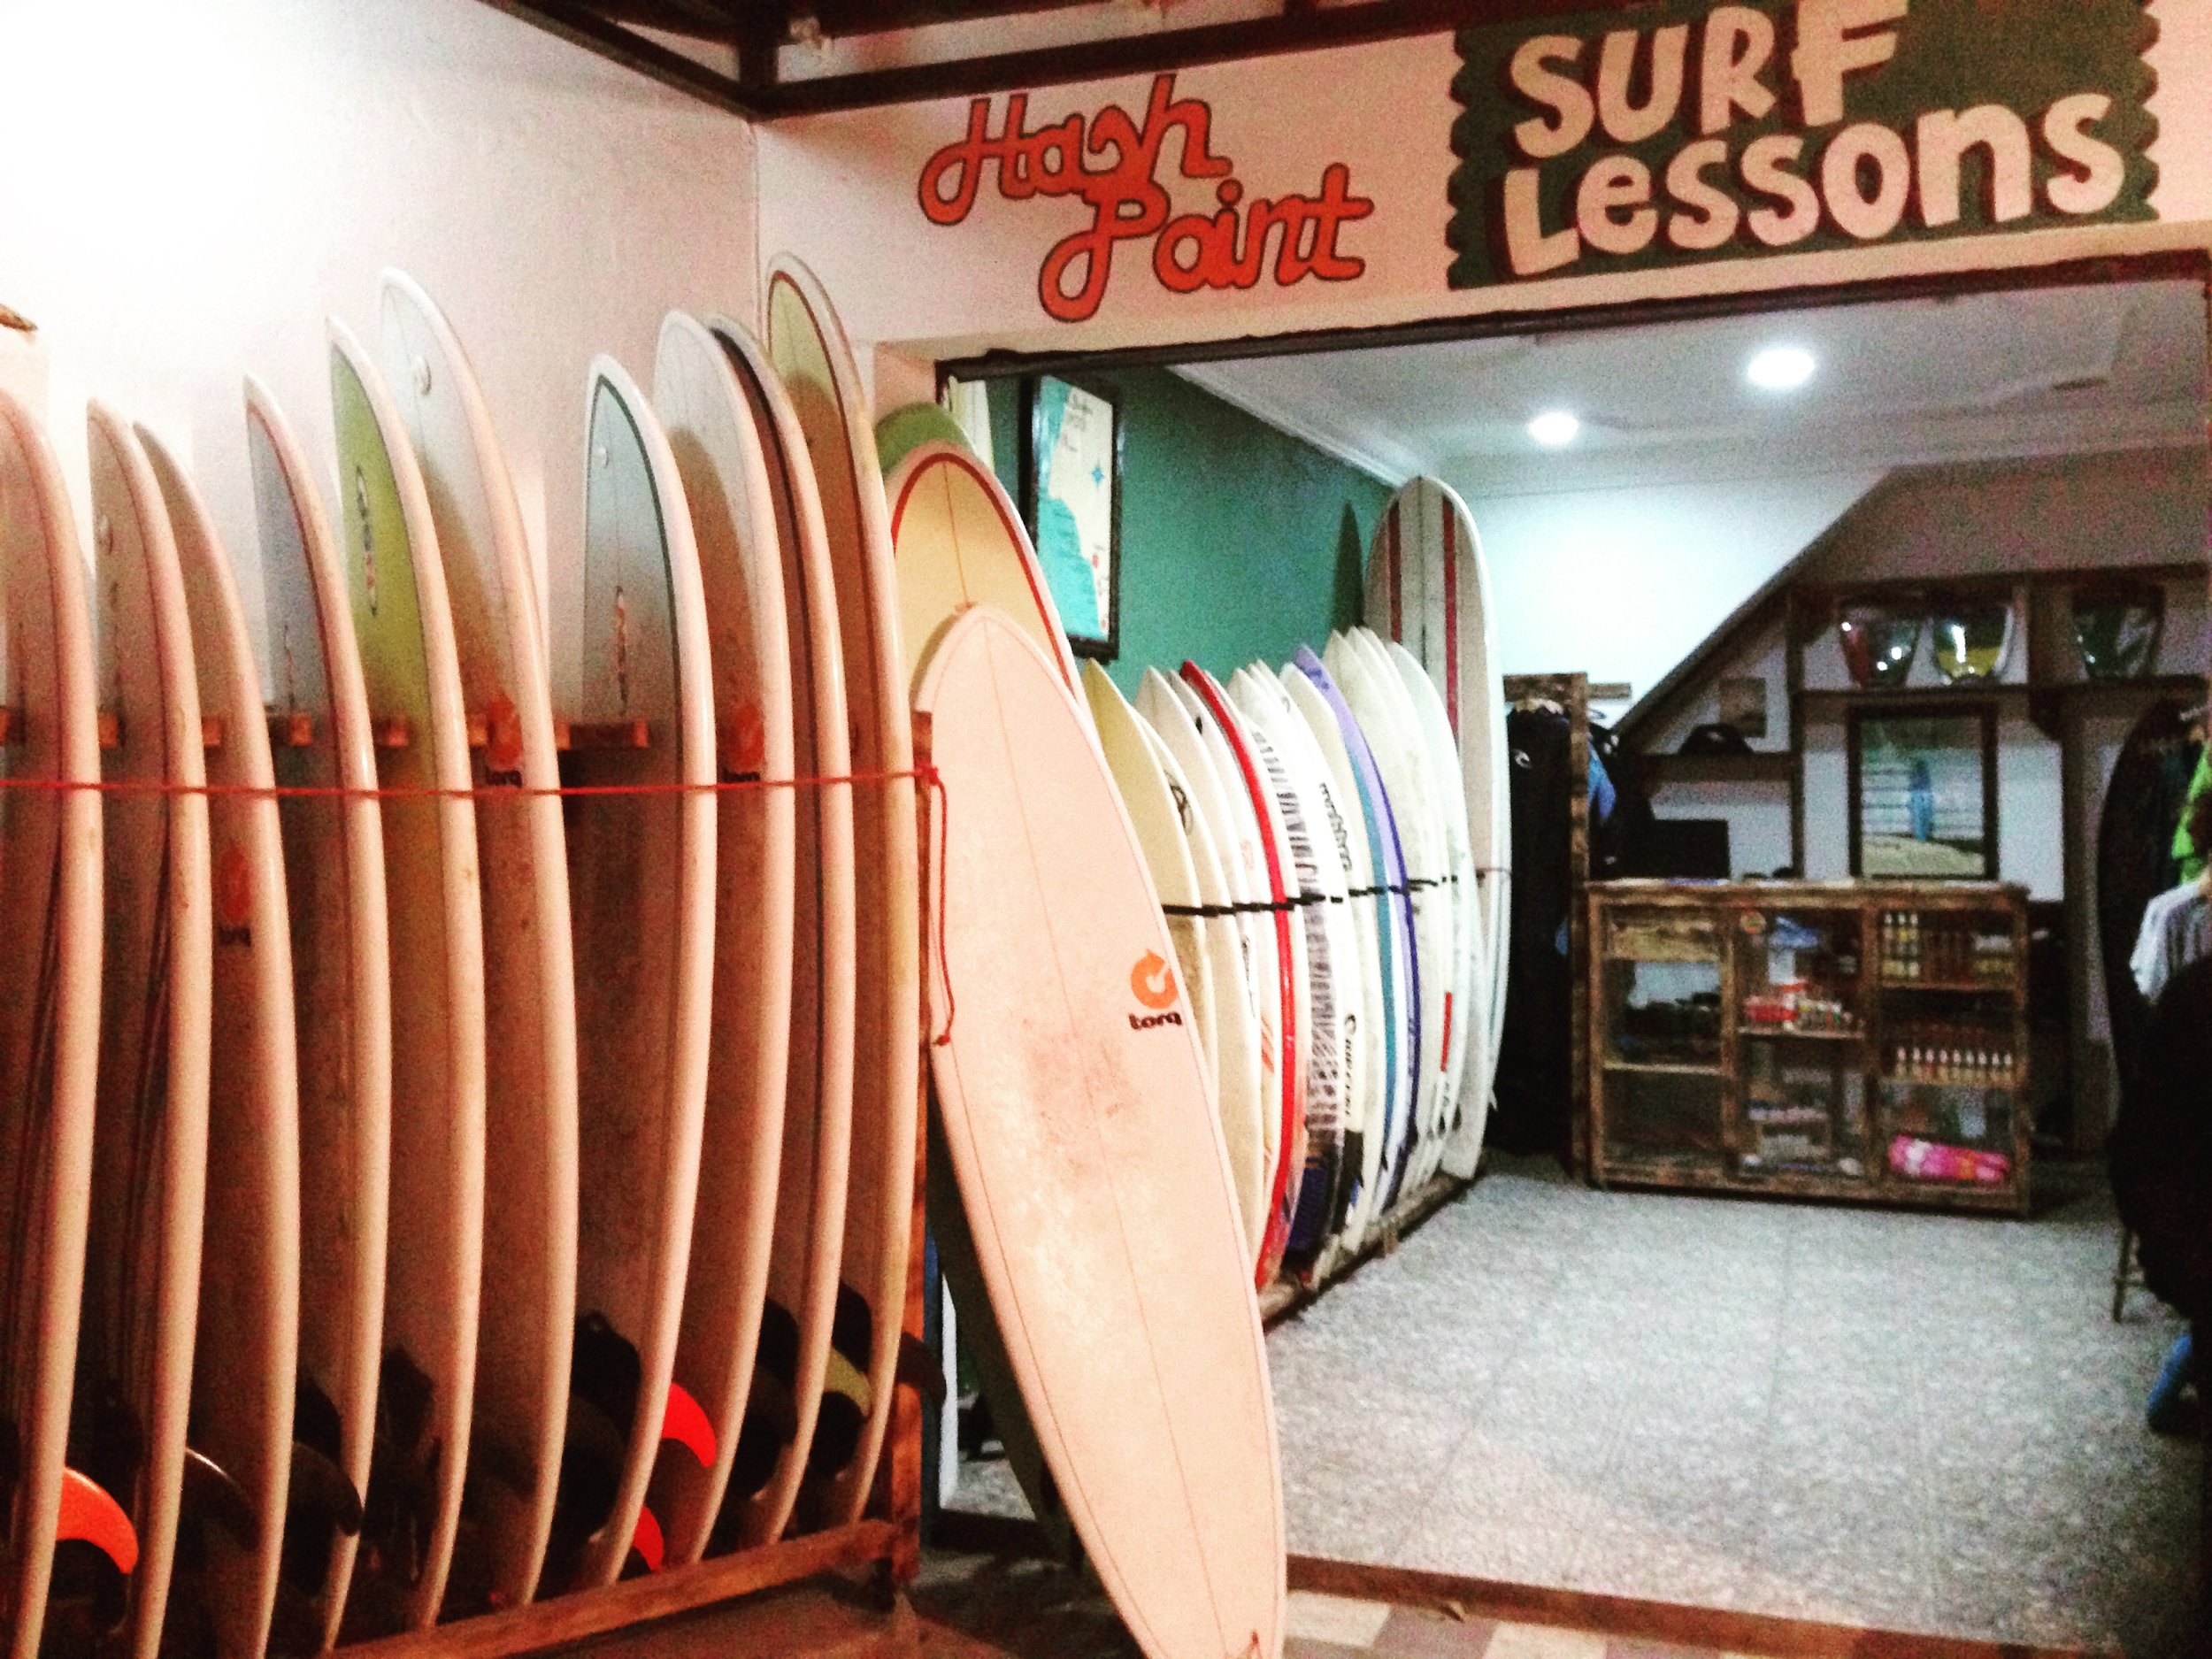 Hashpoint-surfcamp-taghazout-surfshop.jpg